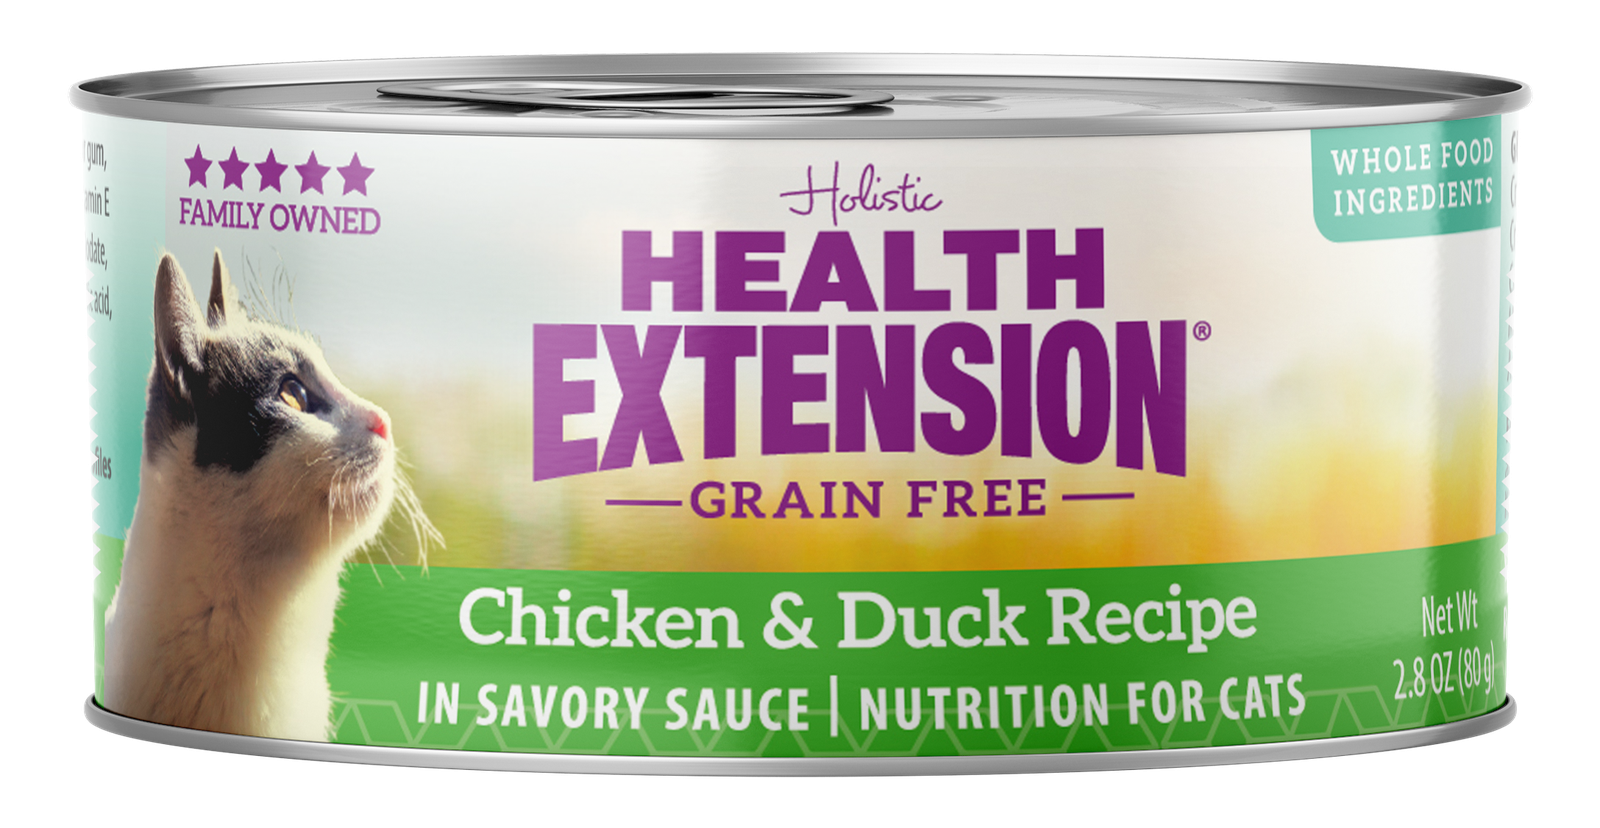 Health Extension Grain-Free Chicken & Duck Recipe Canned Cat Food Image